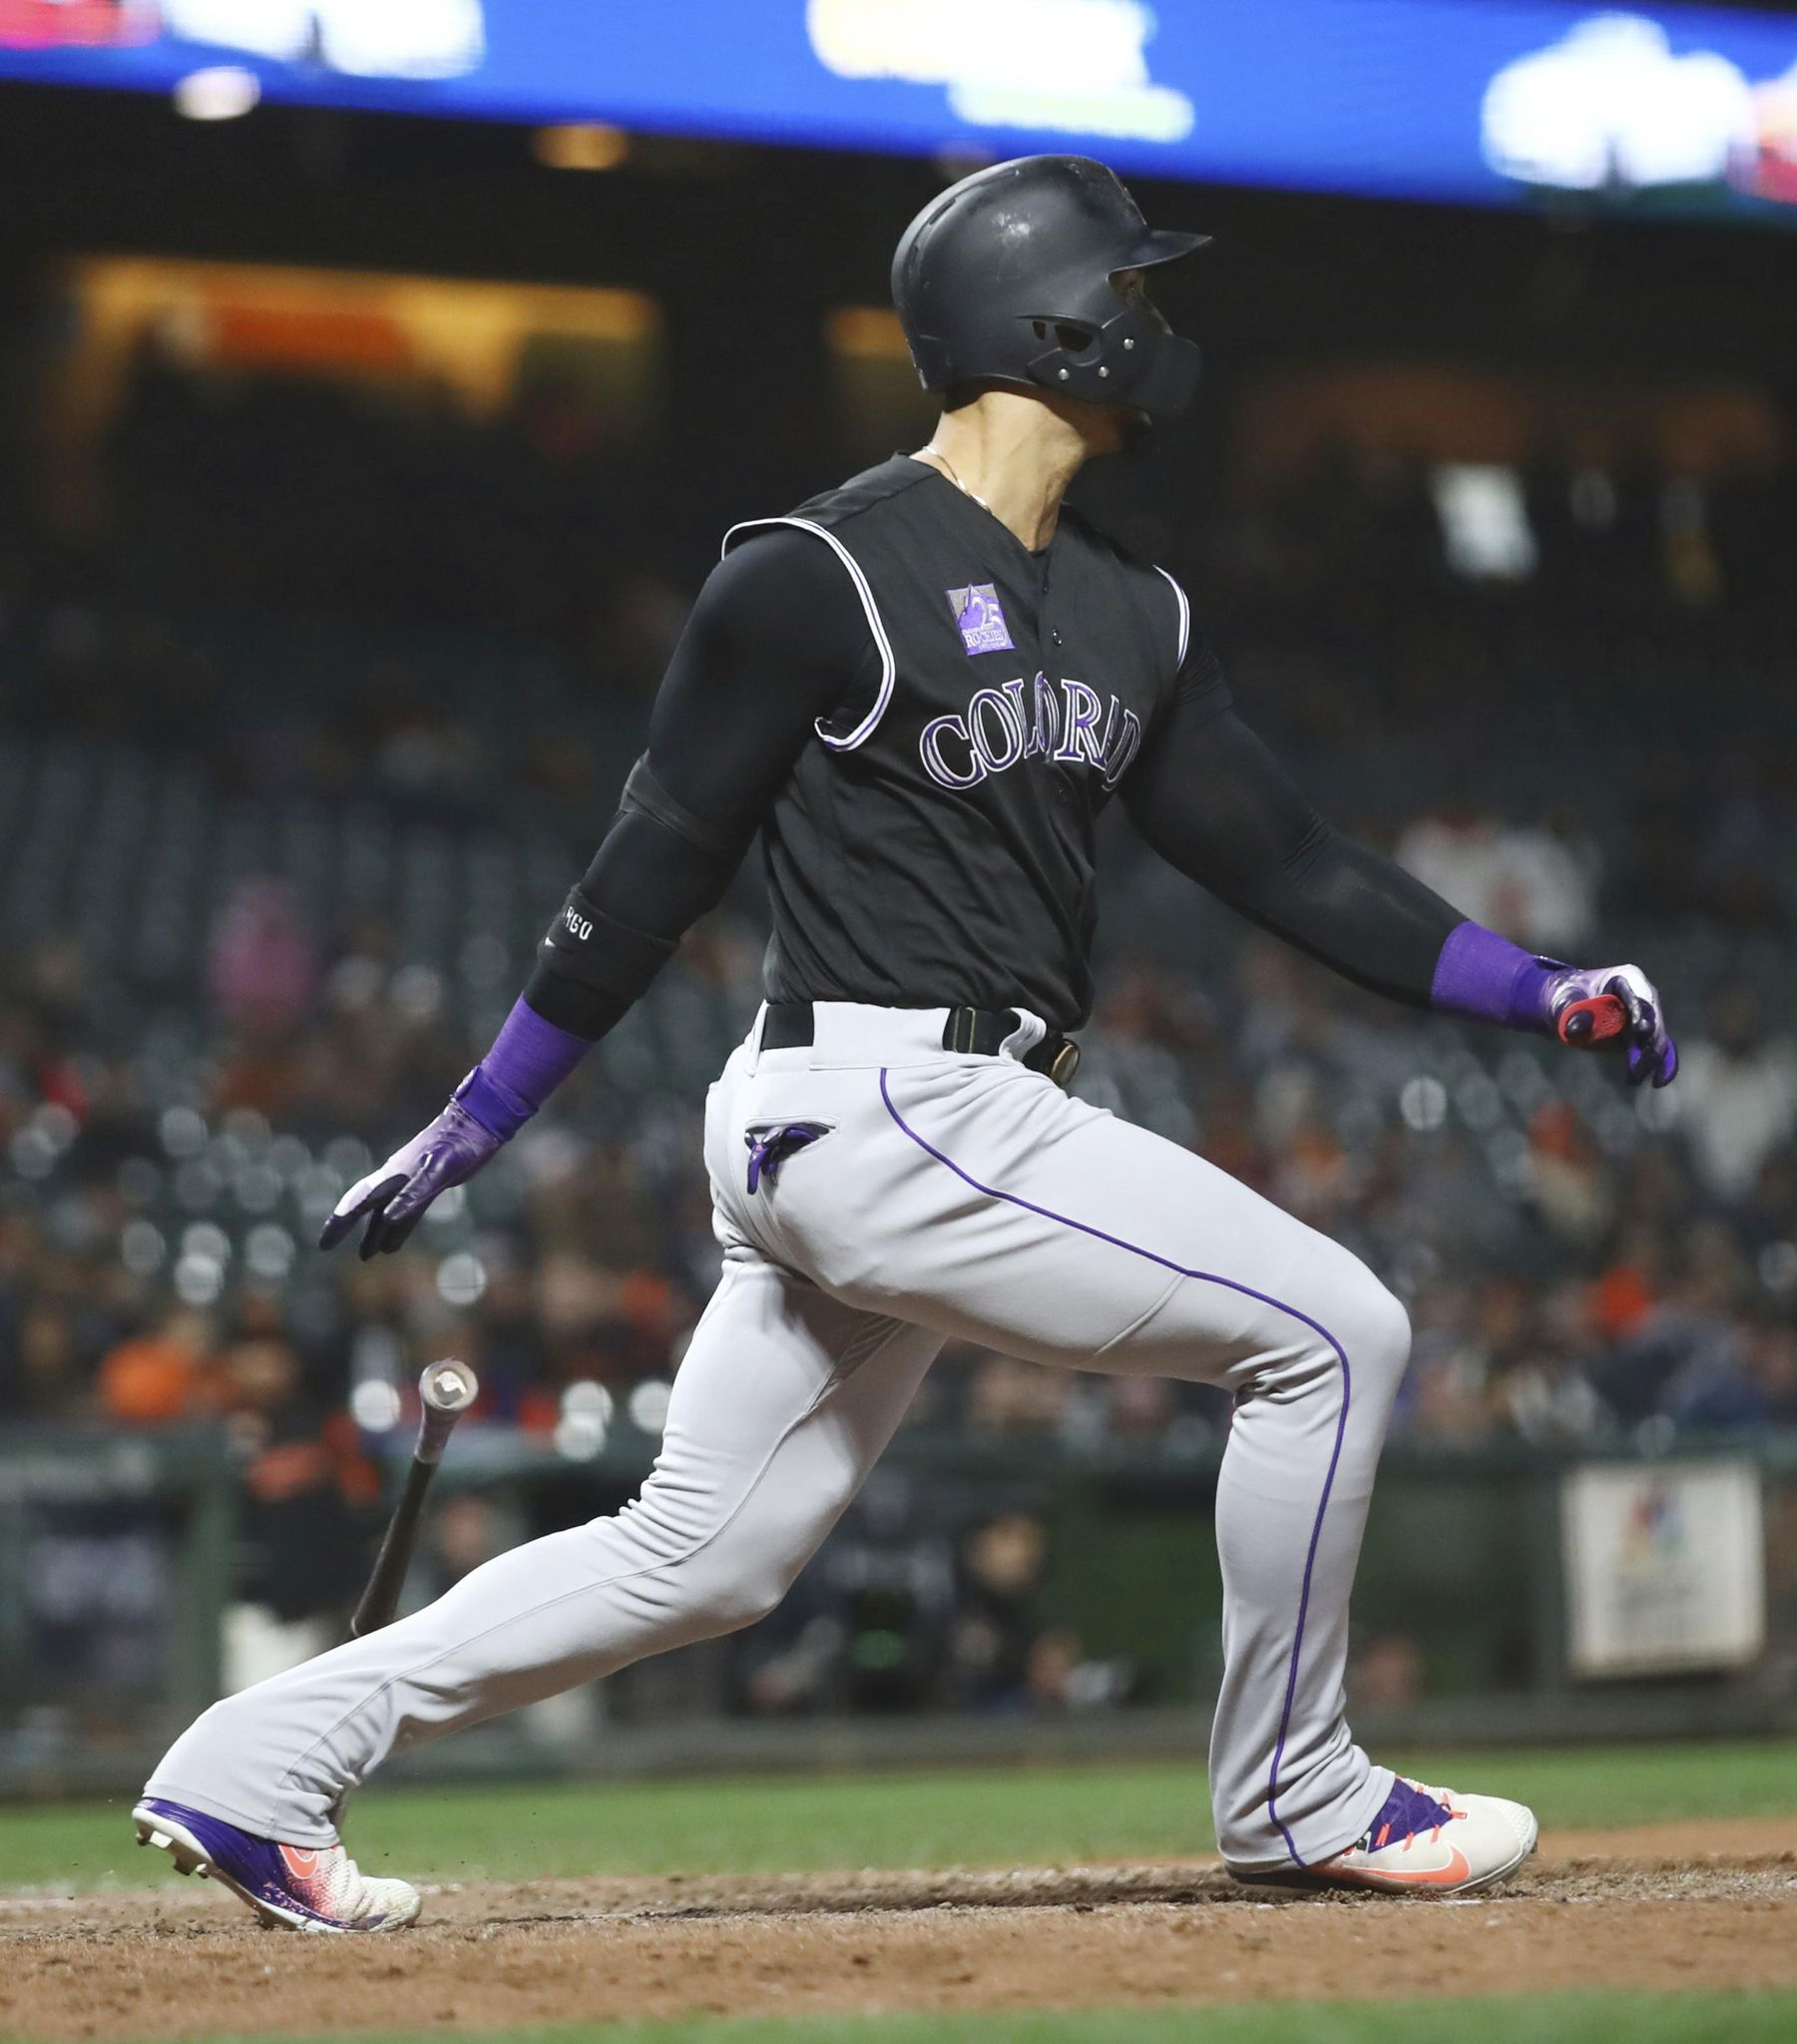 Rockies_giants_baseball_47034_s1801x2048